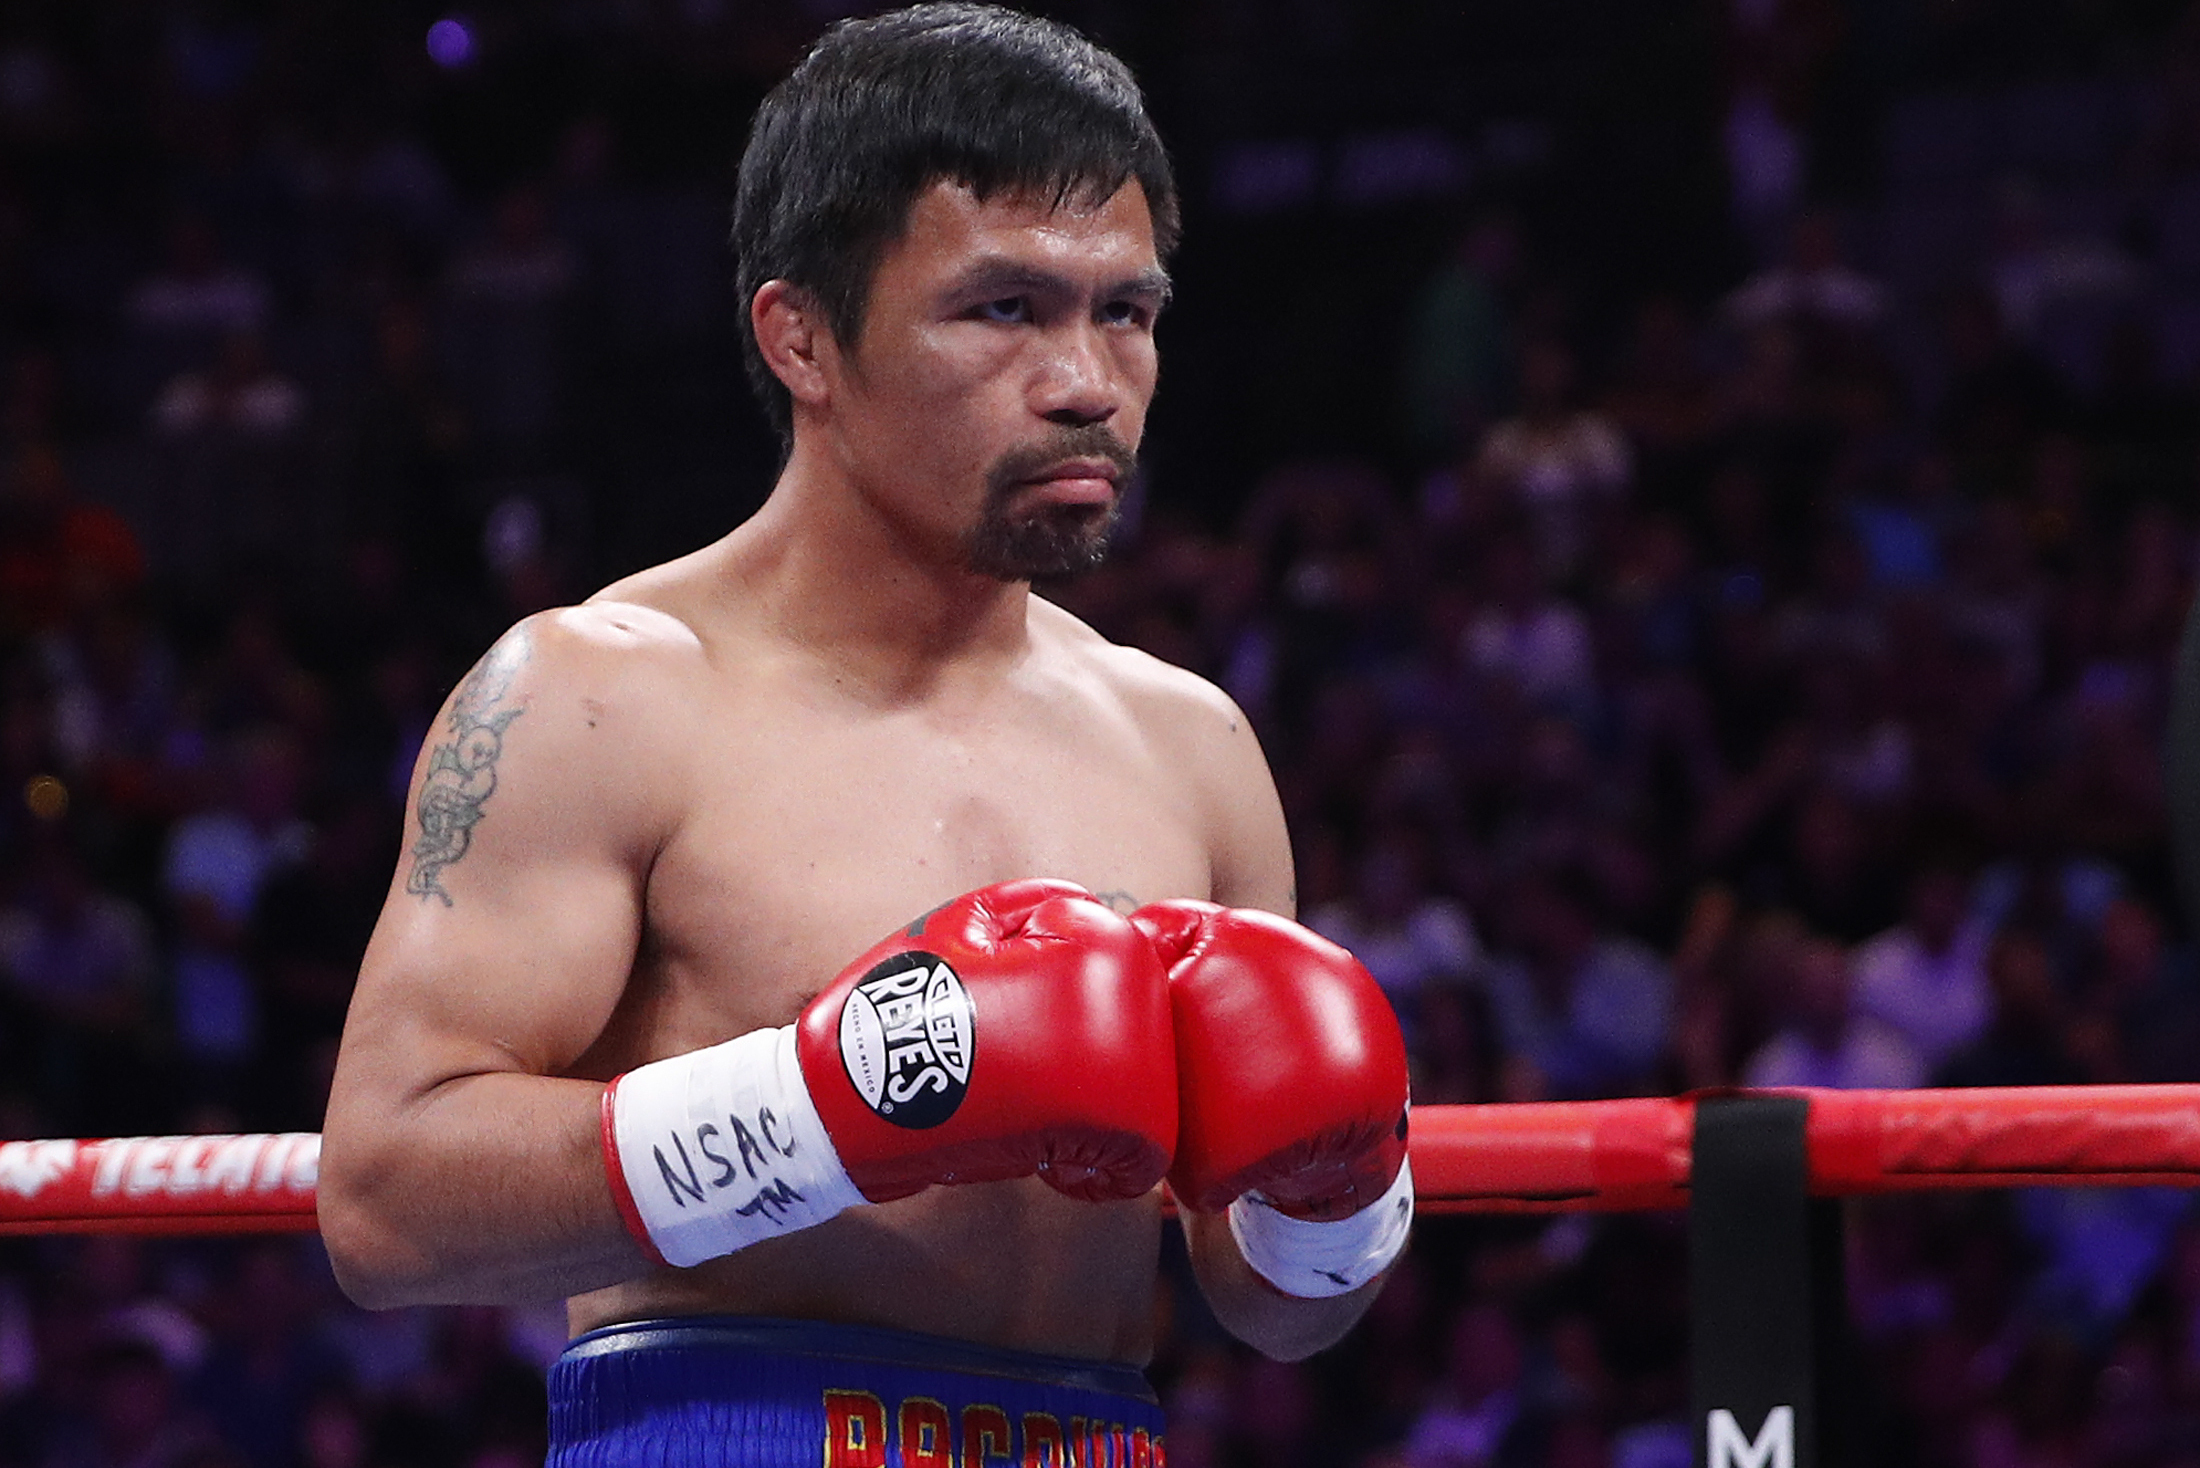 Manny Pacquiao to Run for Philippines President After 2 Fights, Trainer Says | Bleacher Report | Latest News, Videos and Highlights